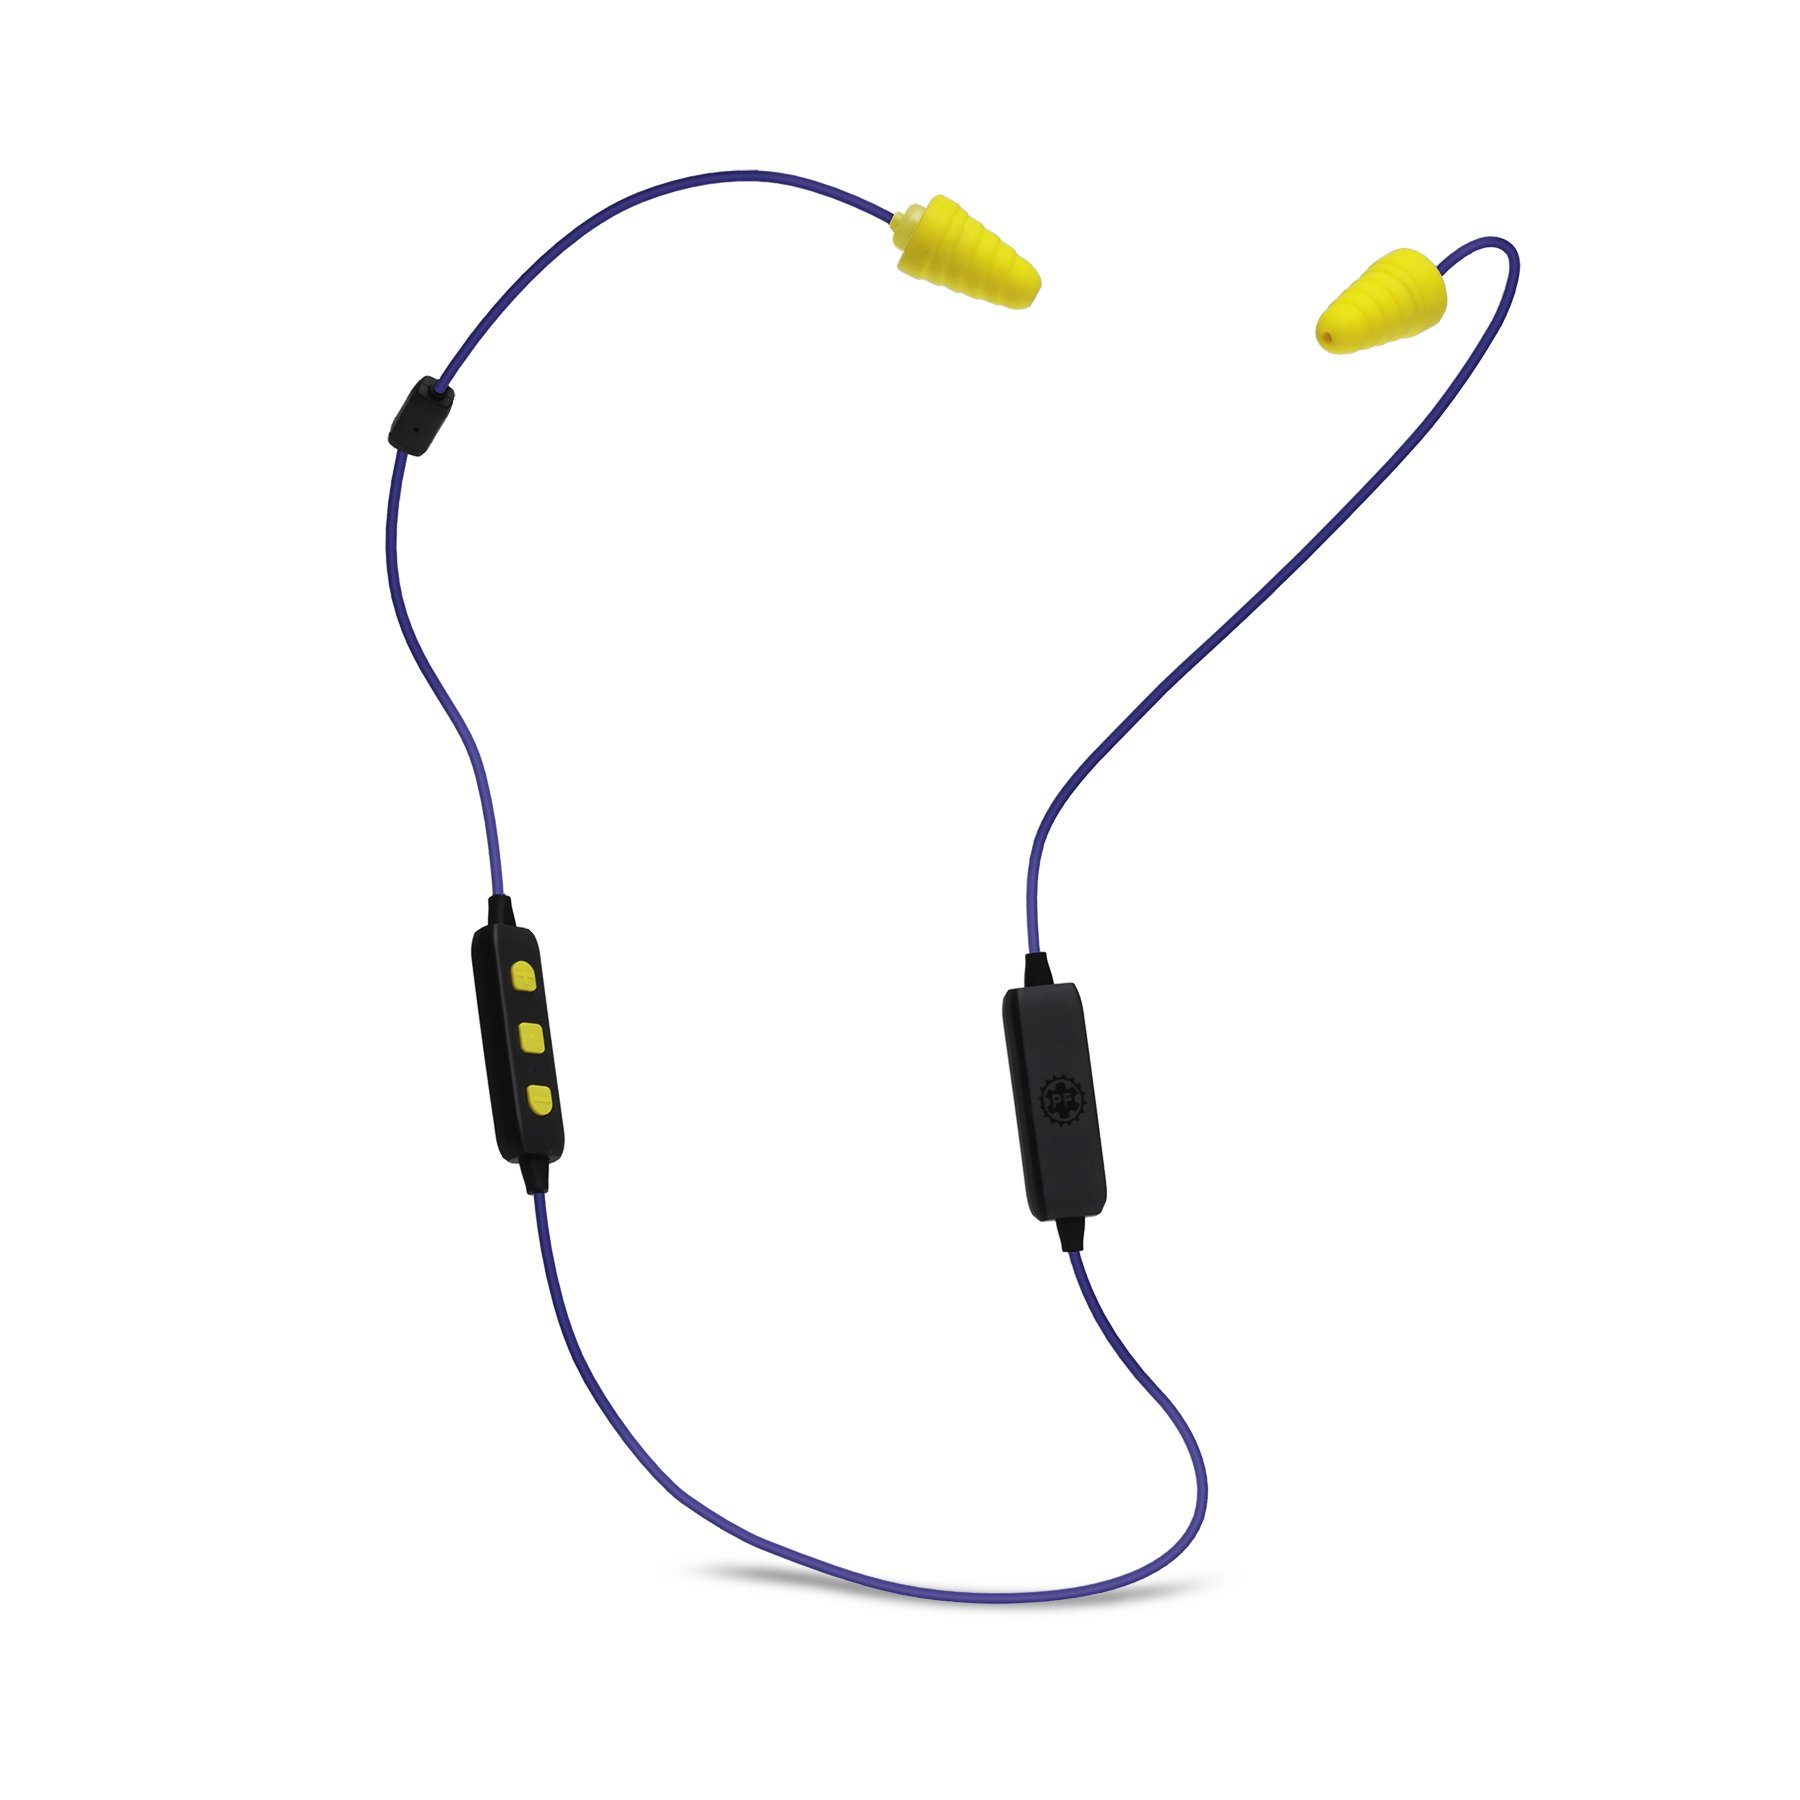 Plugfones Liberate 2.0, Wireless Bluetooth Earplugs with Audio, 26 dB NRR, 12 Hour Battery Life, Noise Isolating Mic and Controls